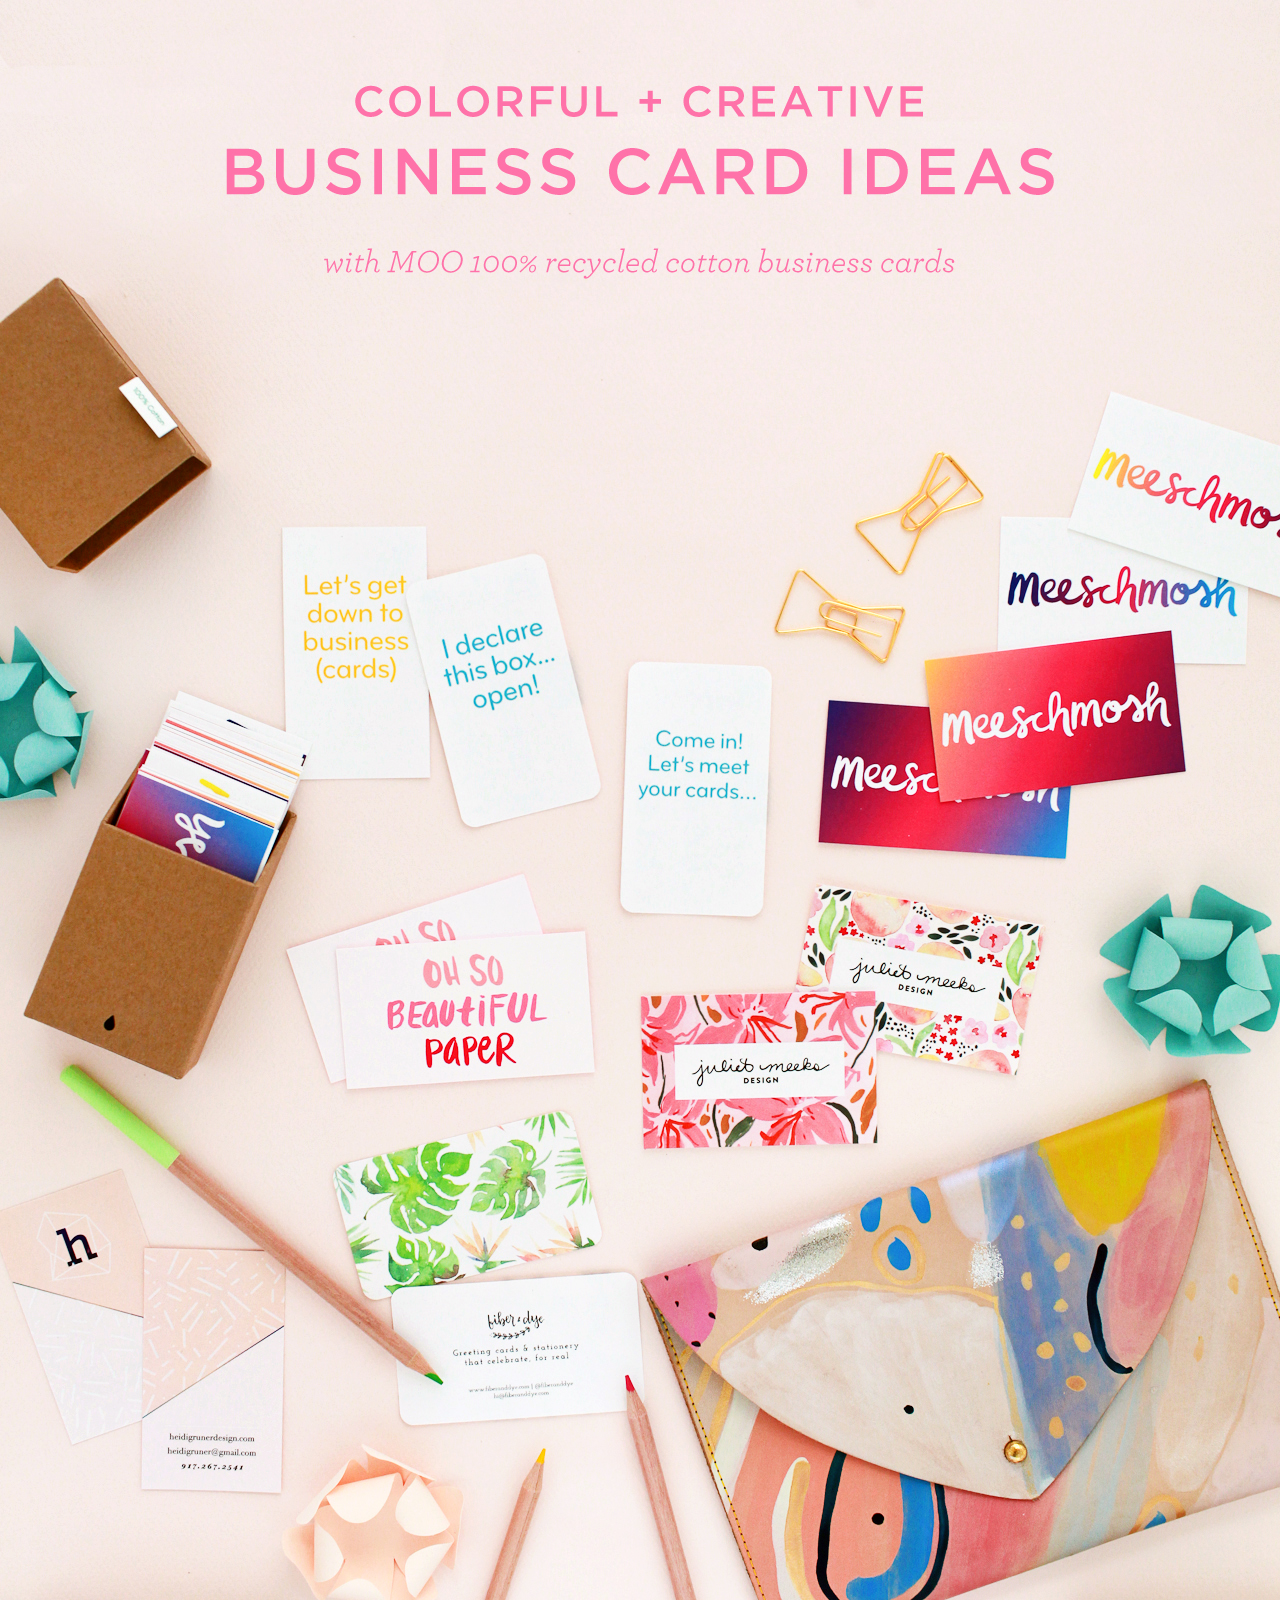 Colorful and creative business cards with moo cotton business cards colorful and creative business cards with moo recycled cotton business cards reheart Choice Image